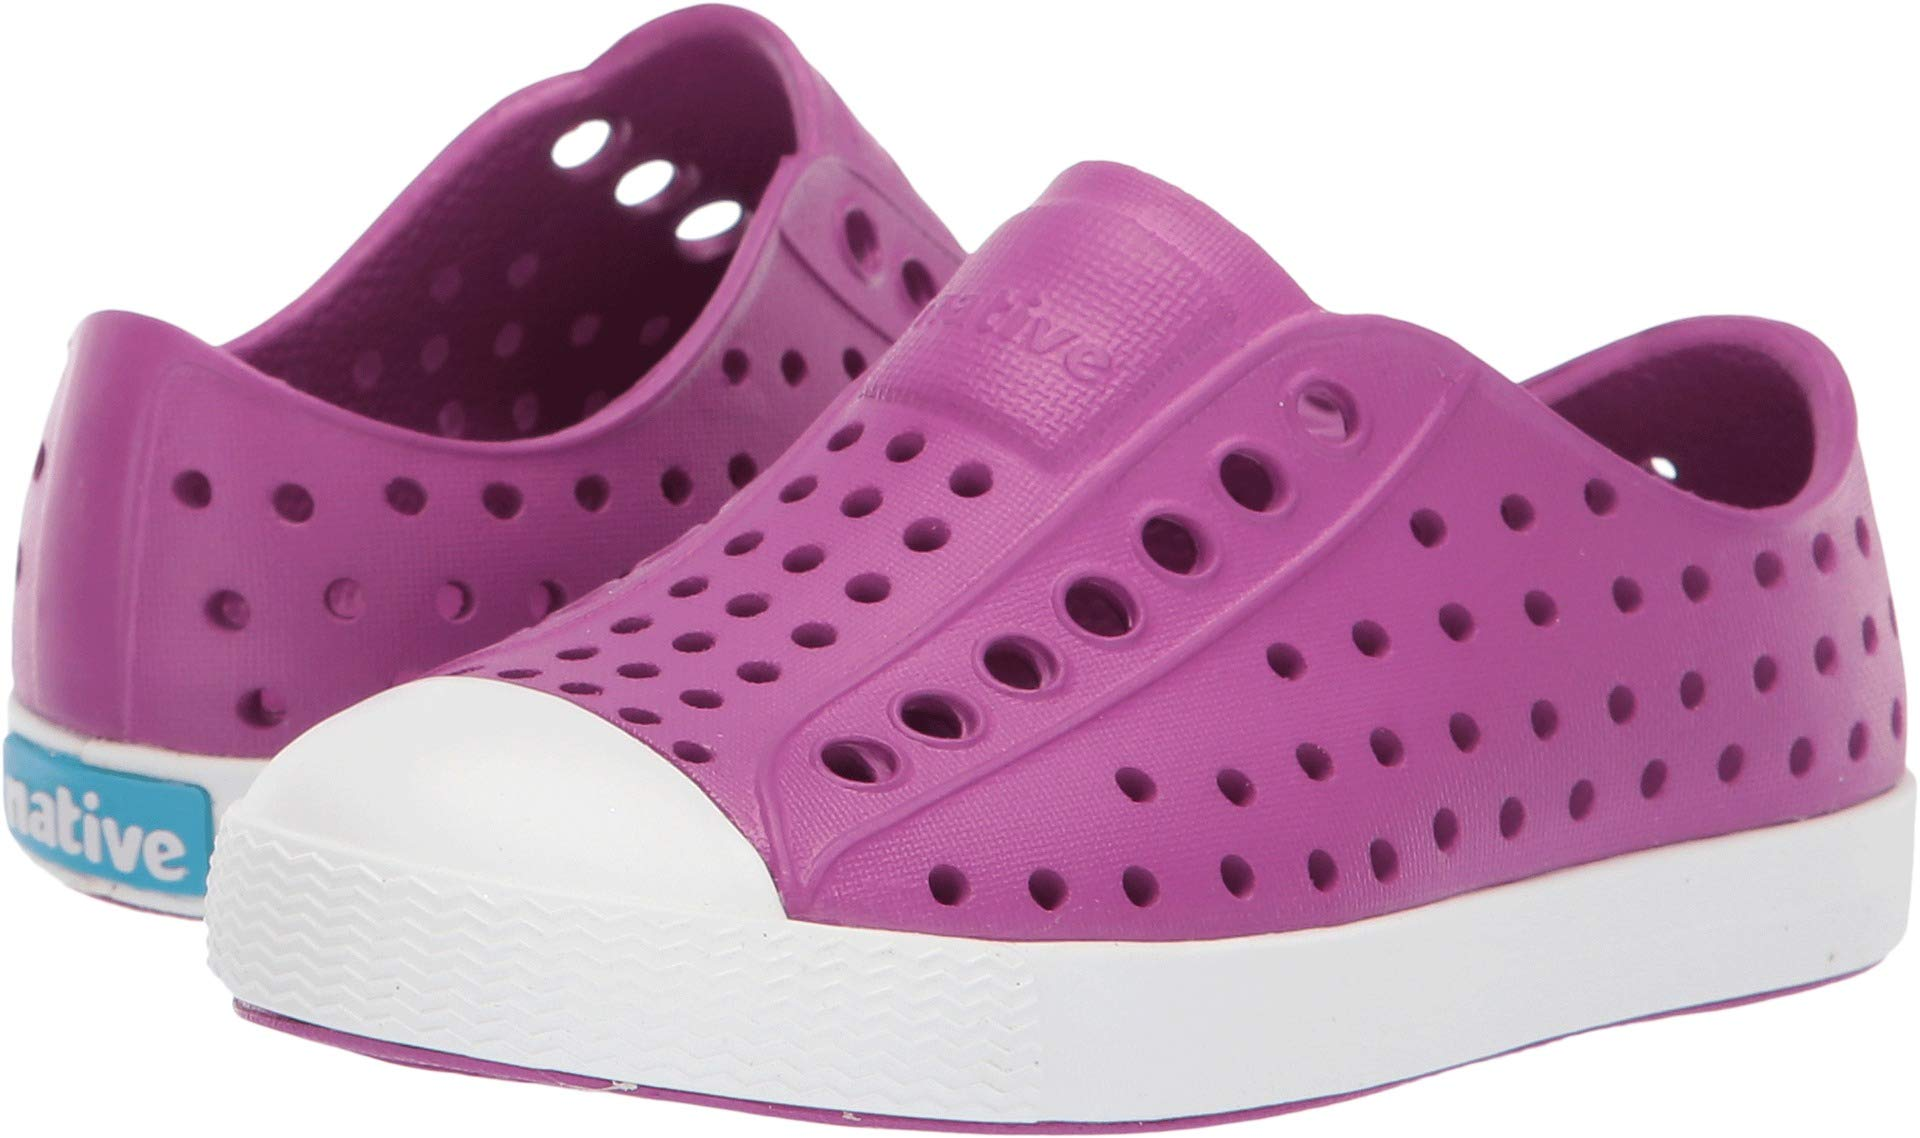 Native Kids Shoes Baby Girl's Jefferson (Toddler/Little Kid) Origami Purple/Shell White 6 M US Toddler by Native